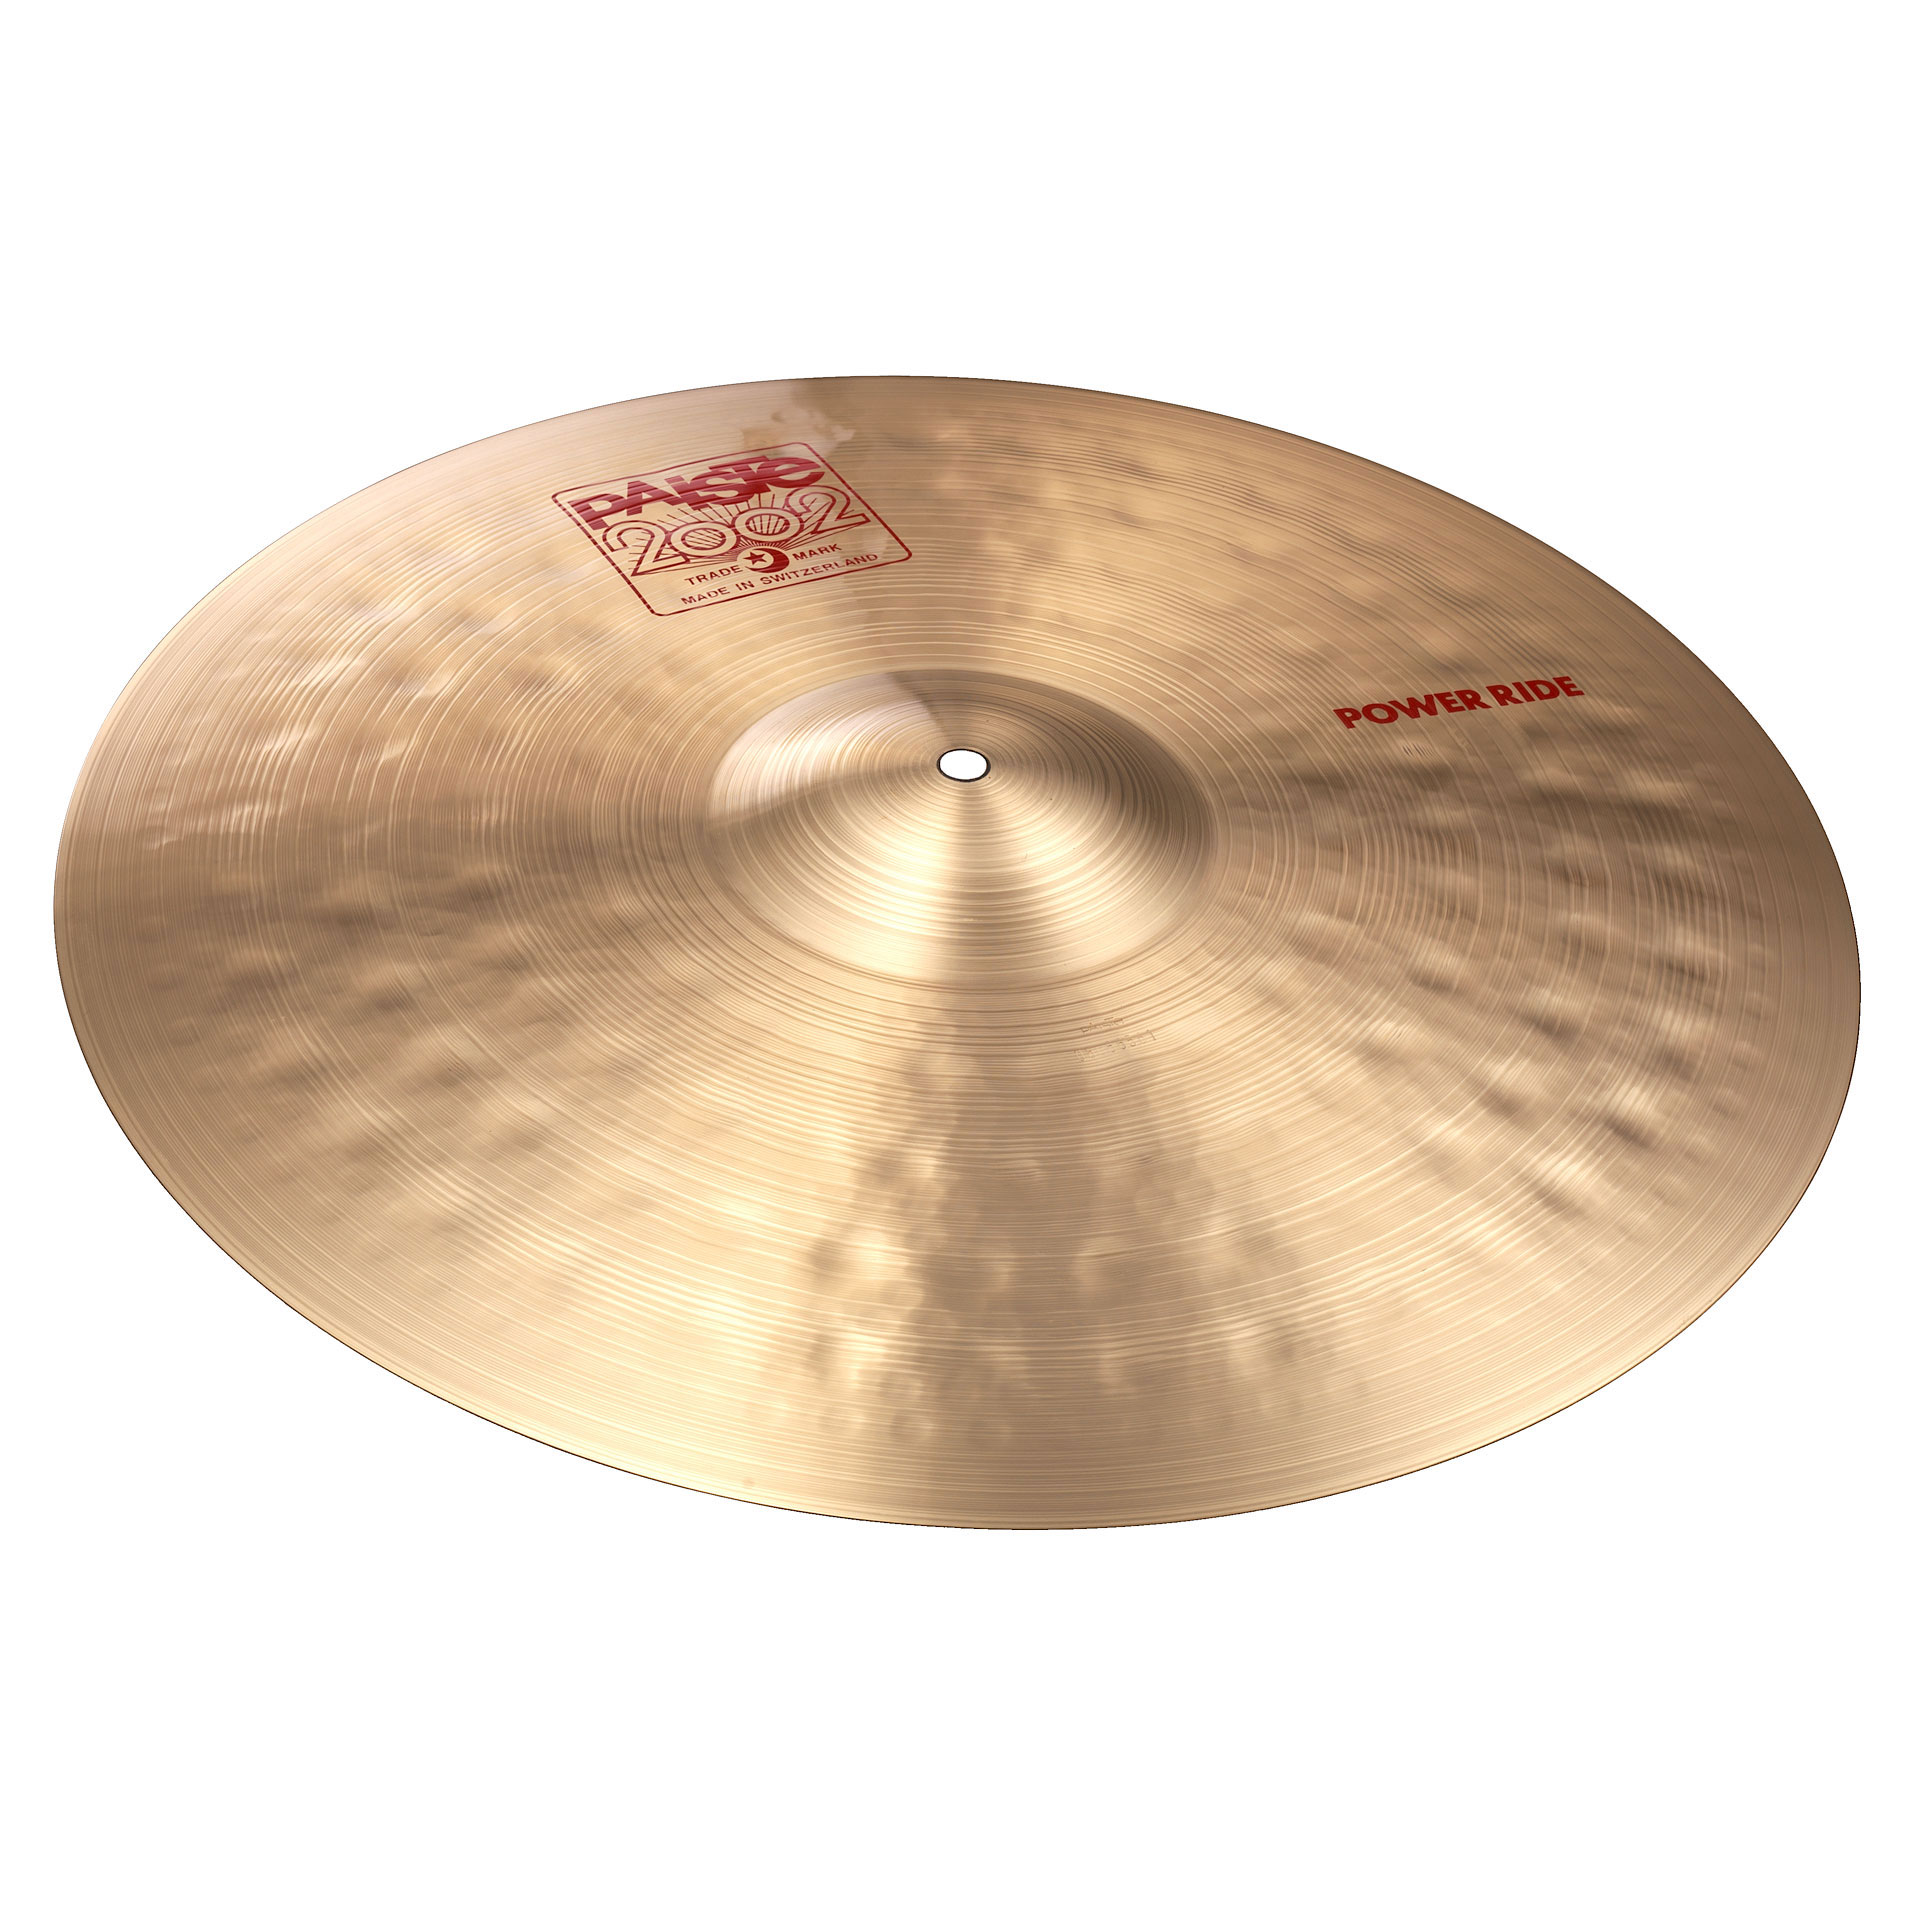 "Paiste 22"" 2002 Power Ride Cymbal"